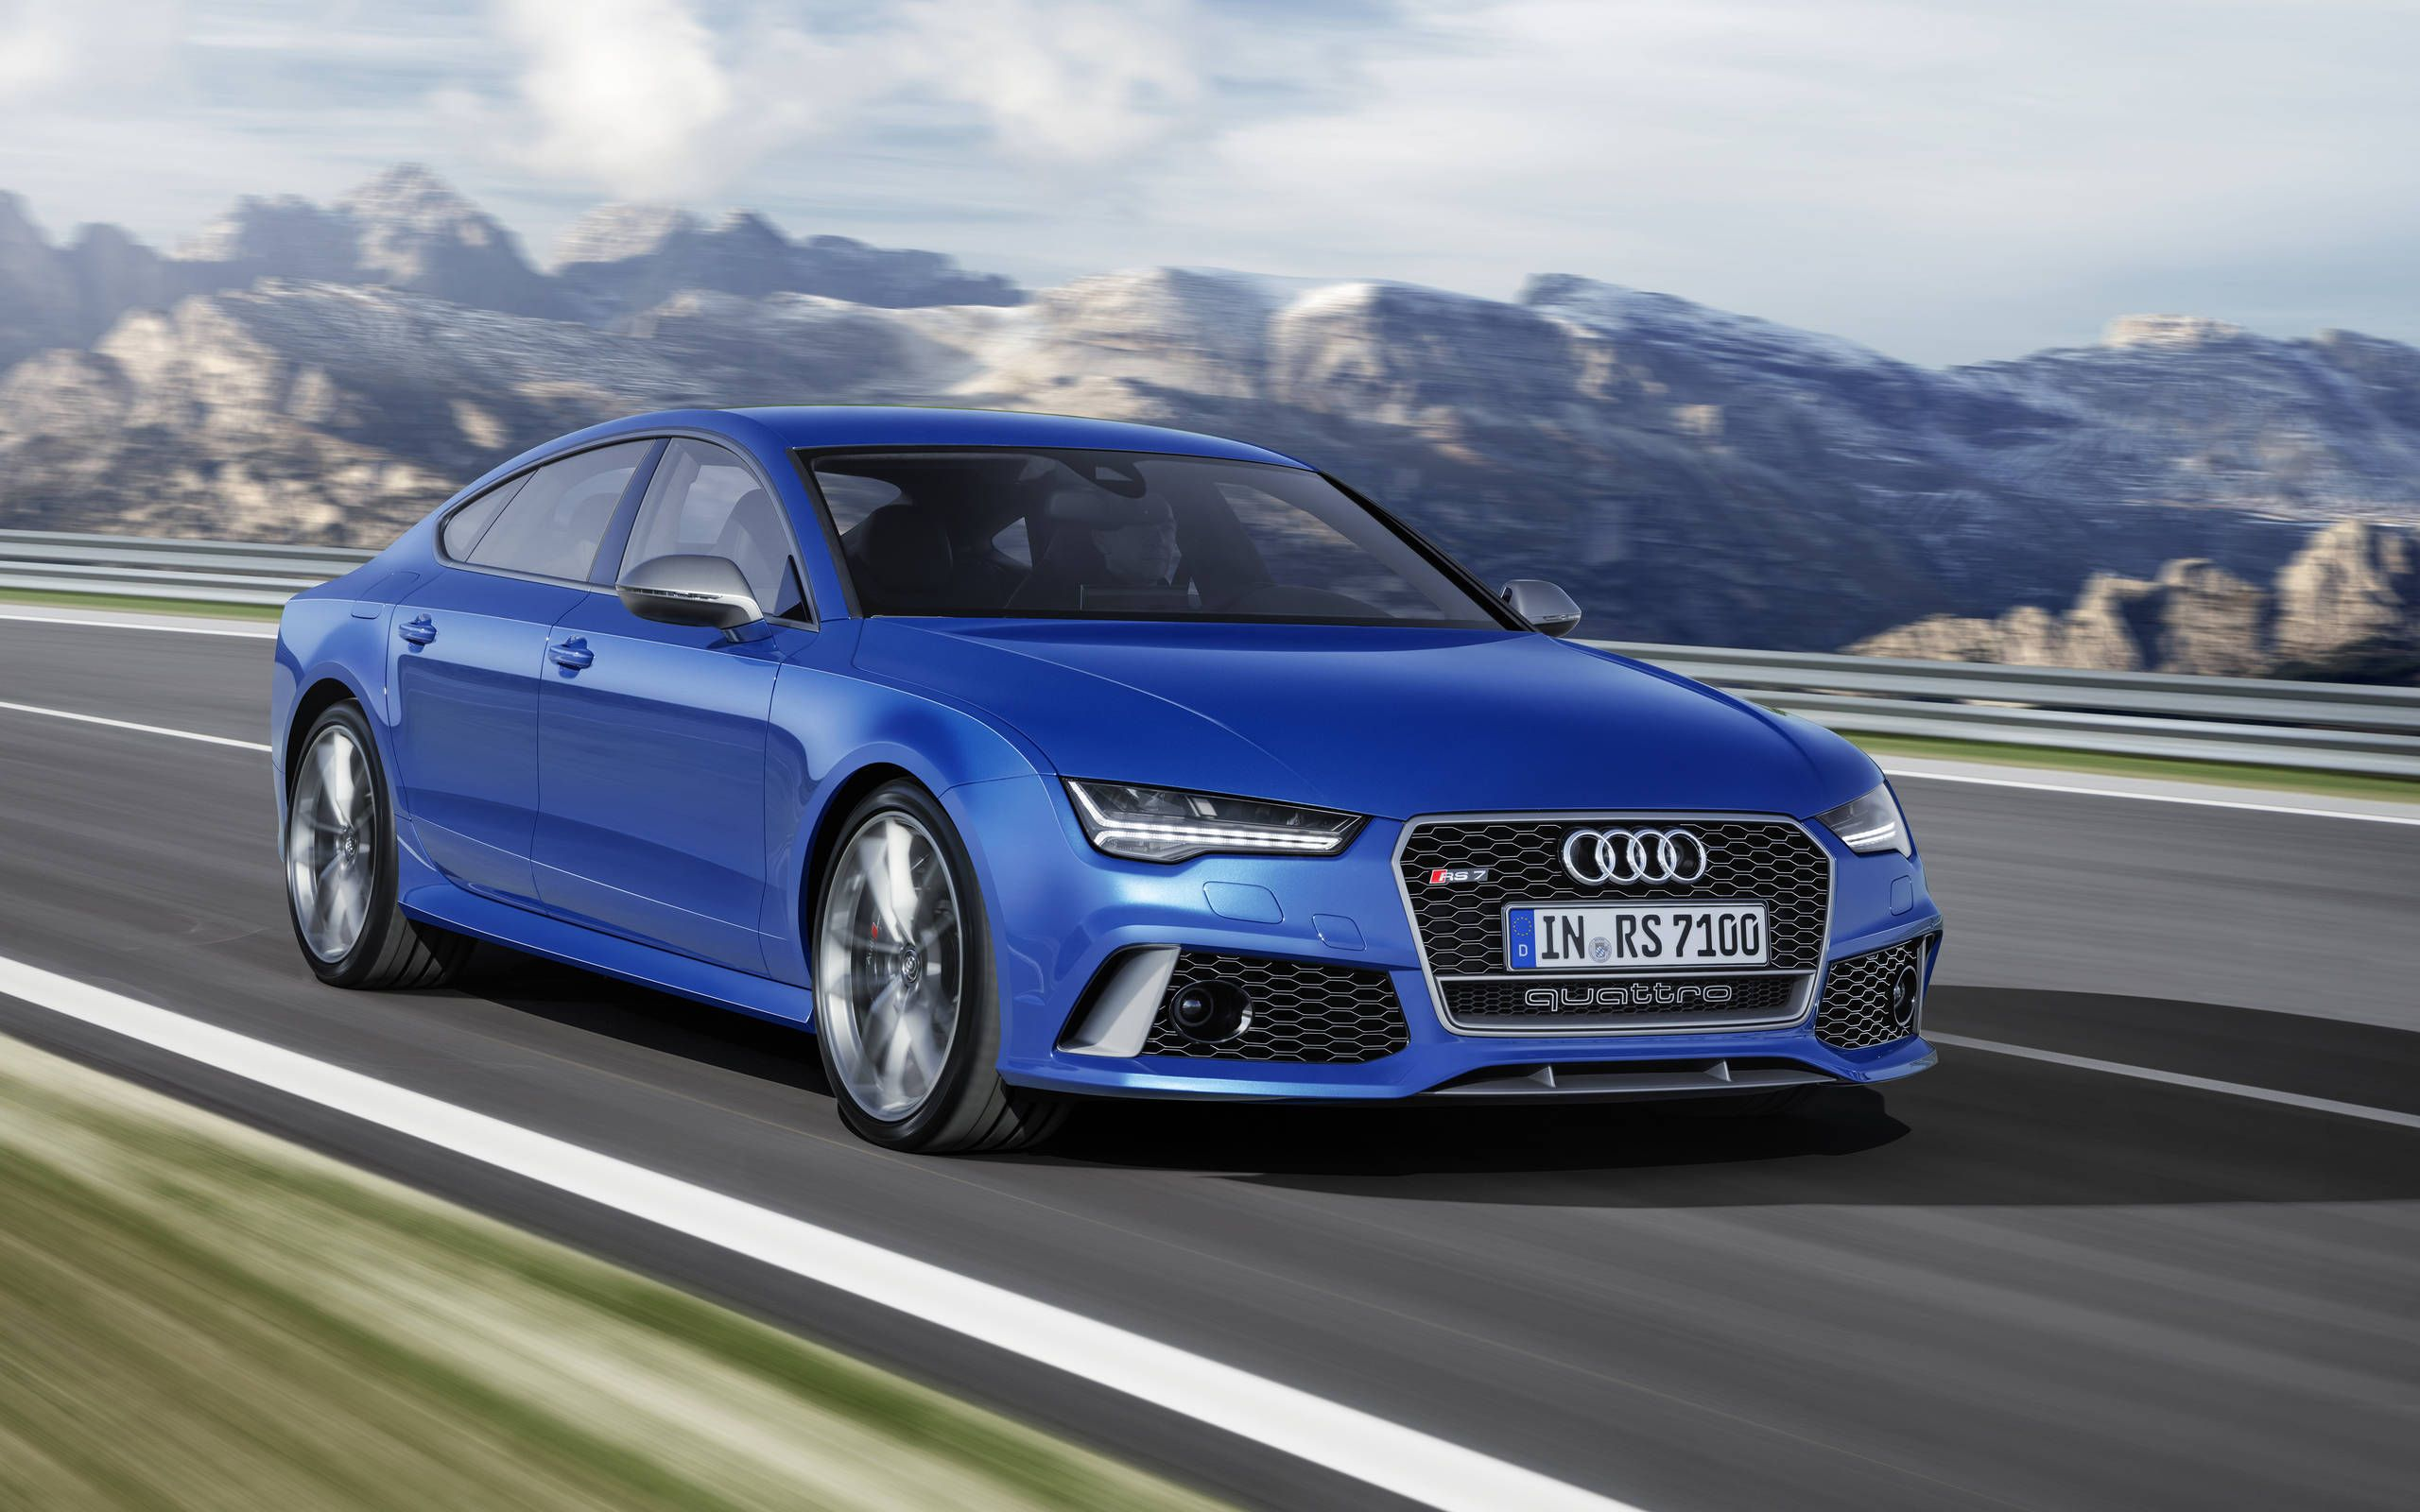 2017 Audi Rs7 Performance Quick Take Mat The Throttle And Hold On